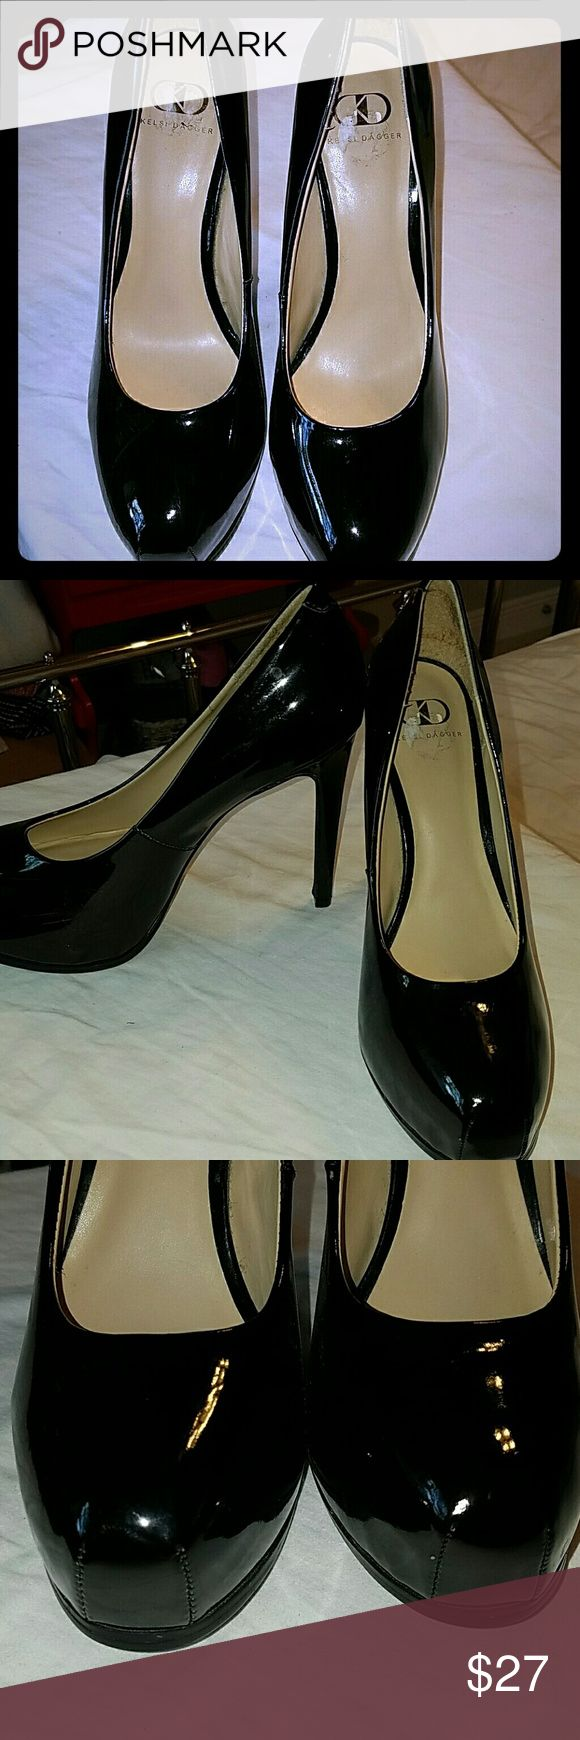 "Patent leather pumps Black patent leather pumps with platform with 6"" thin heel. Worn once. Kelsi Dagger Shoes Platforms"